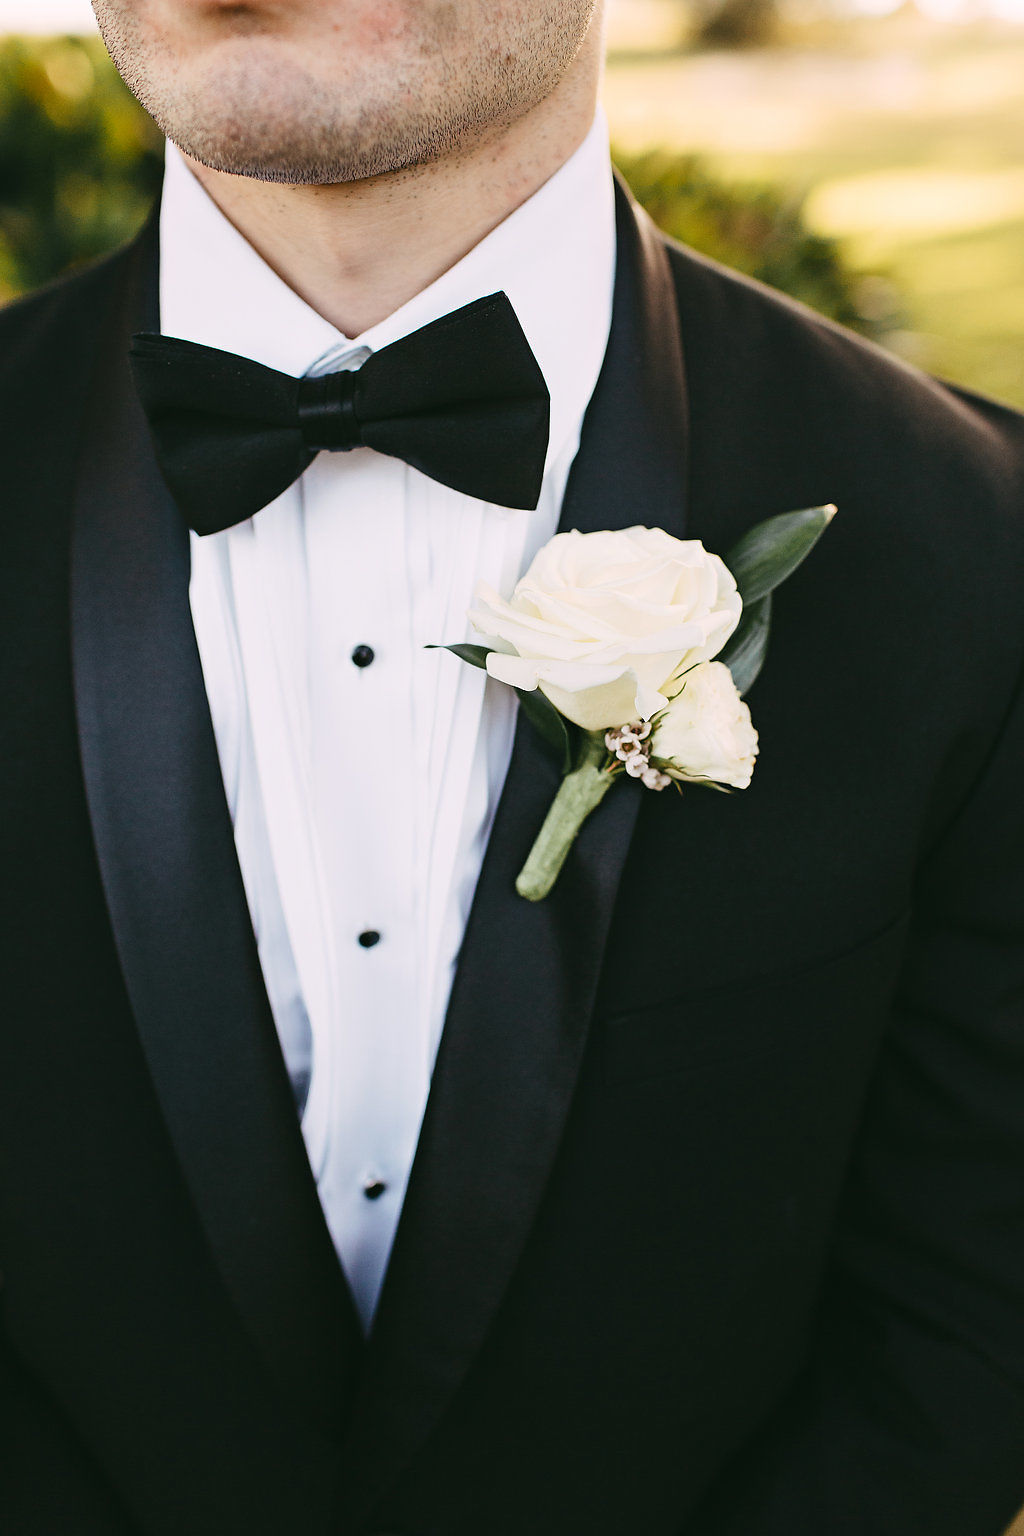 The Proper Way To Put On a Boutonniere